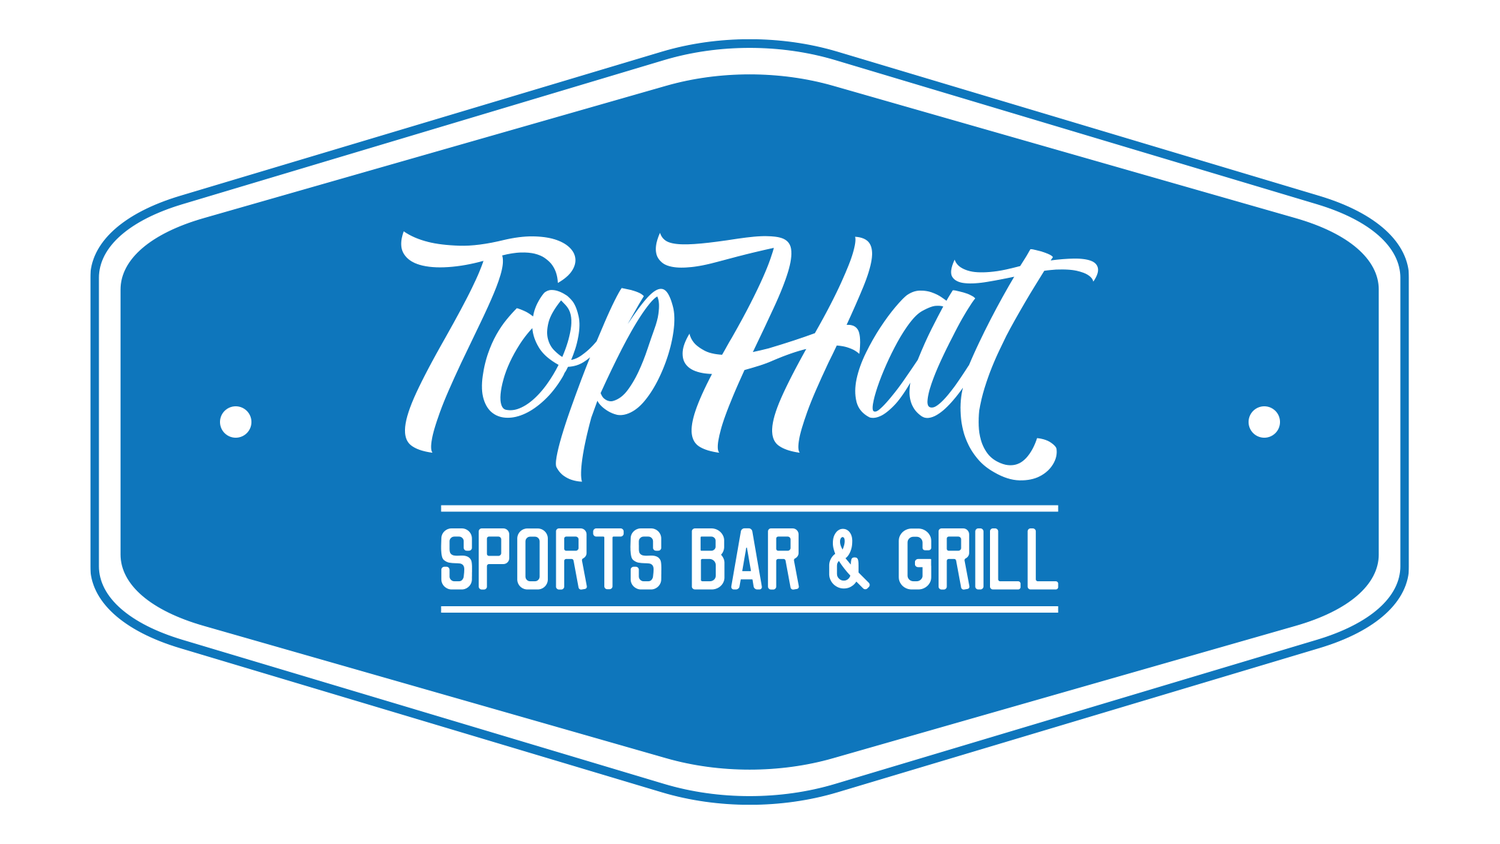 Top Hat Sports Bar & Grill